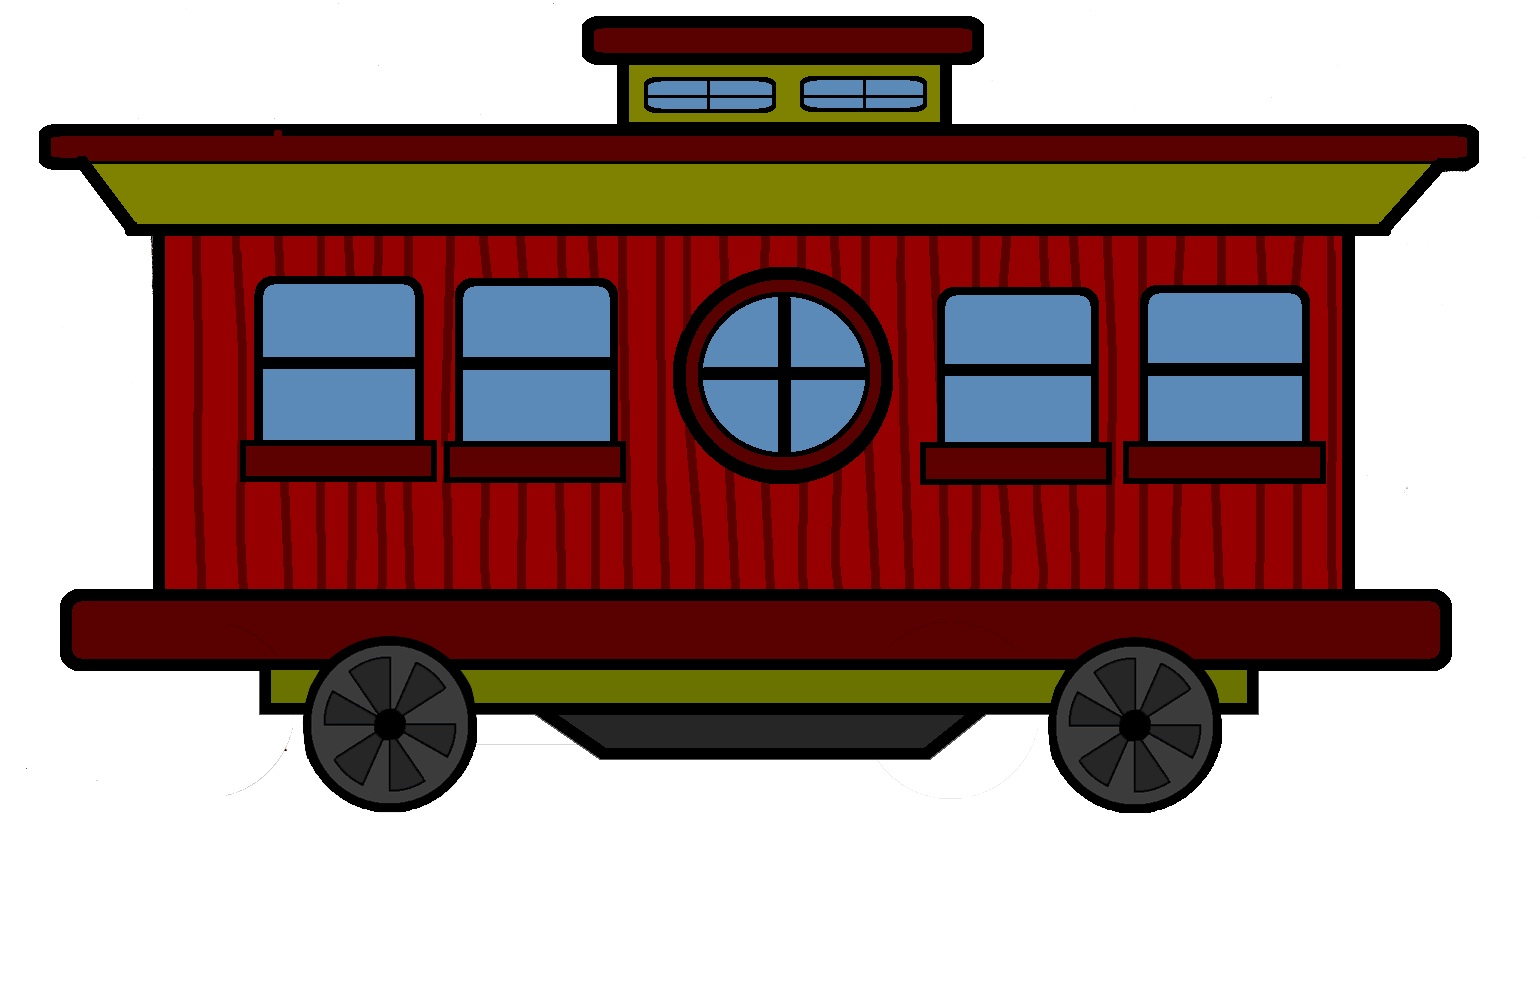 Train caboose clipart 4 » Clipart Station.